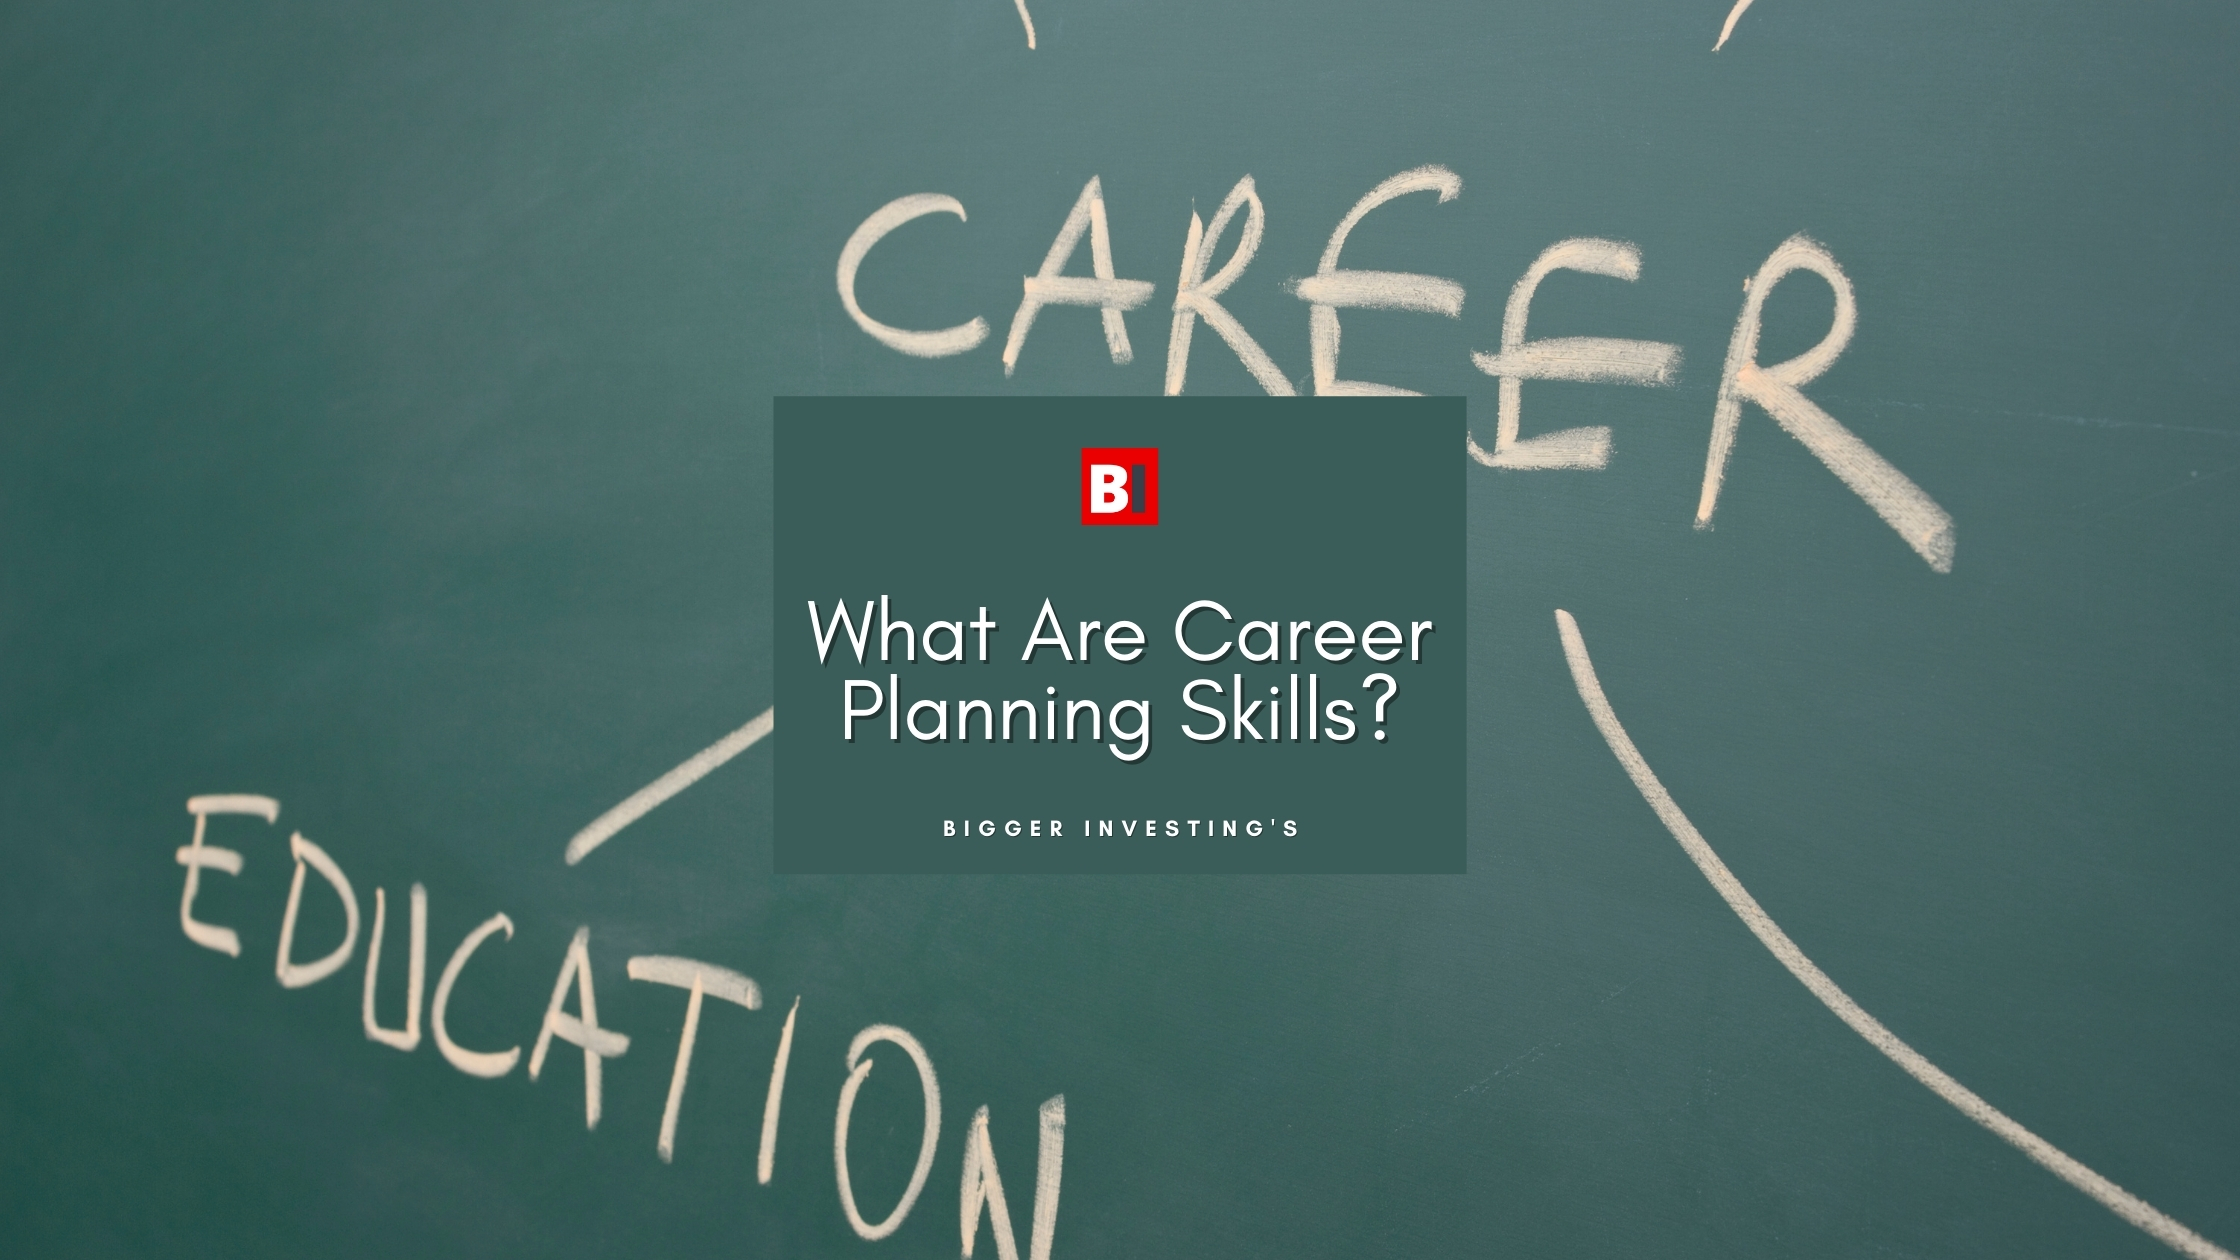 What Are Career Planning Skills?